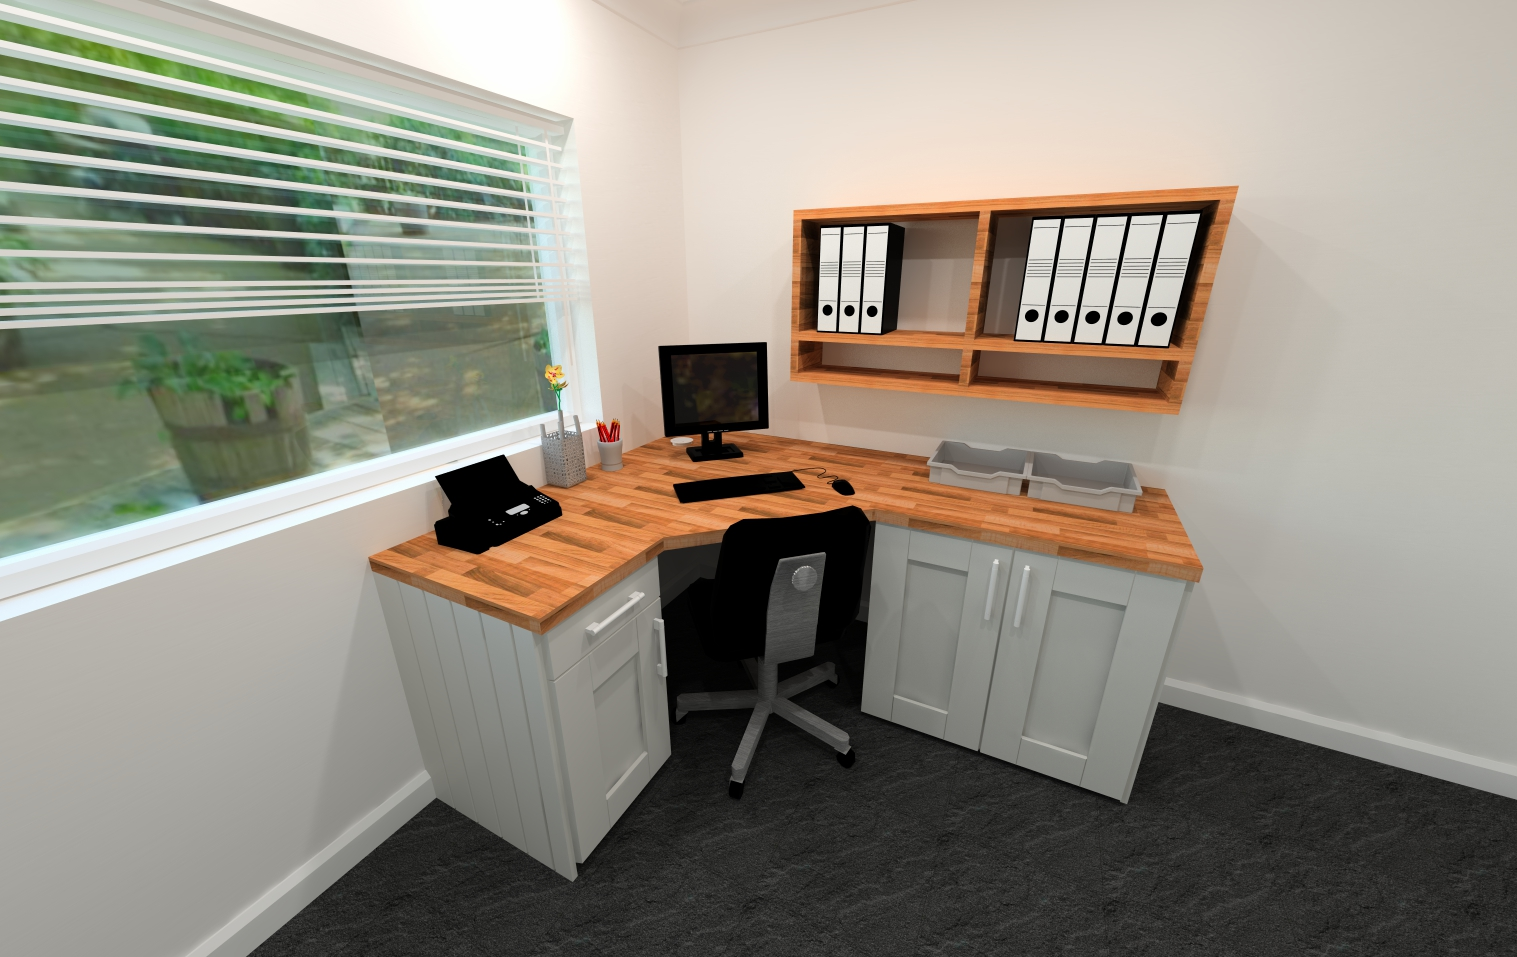 Kitchen Office Furniture 28 Images Office Kitchen Furniture 1376 Home And Garden Photo